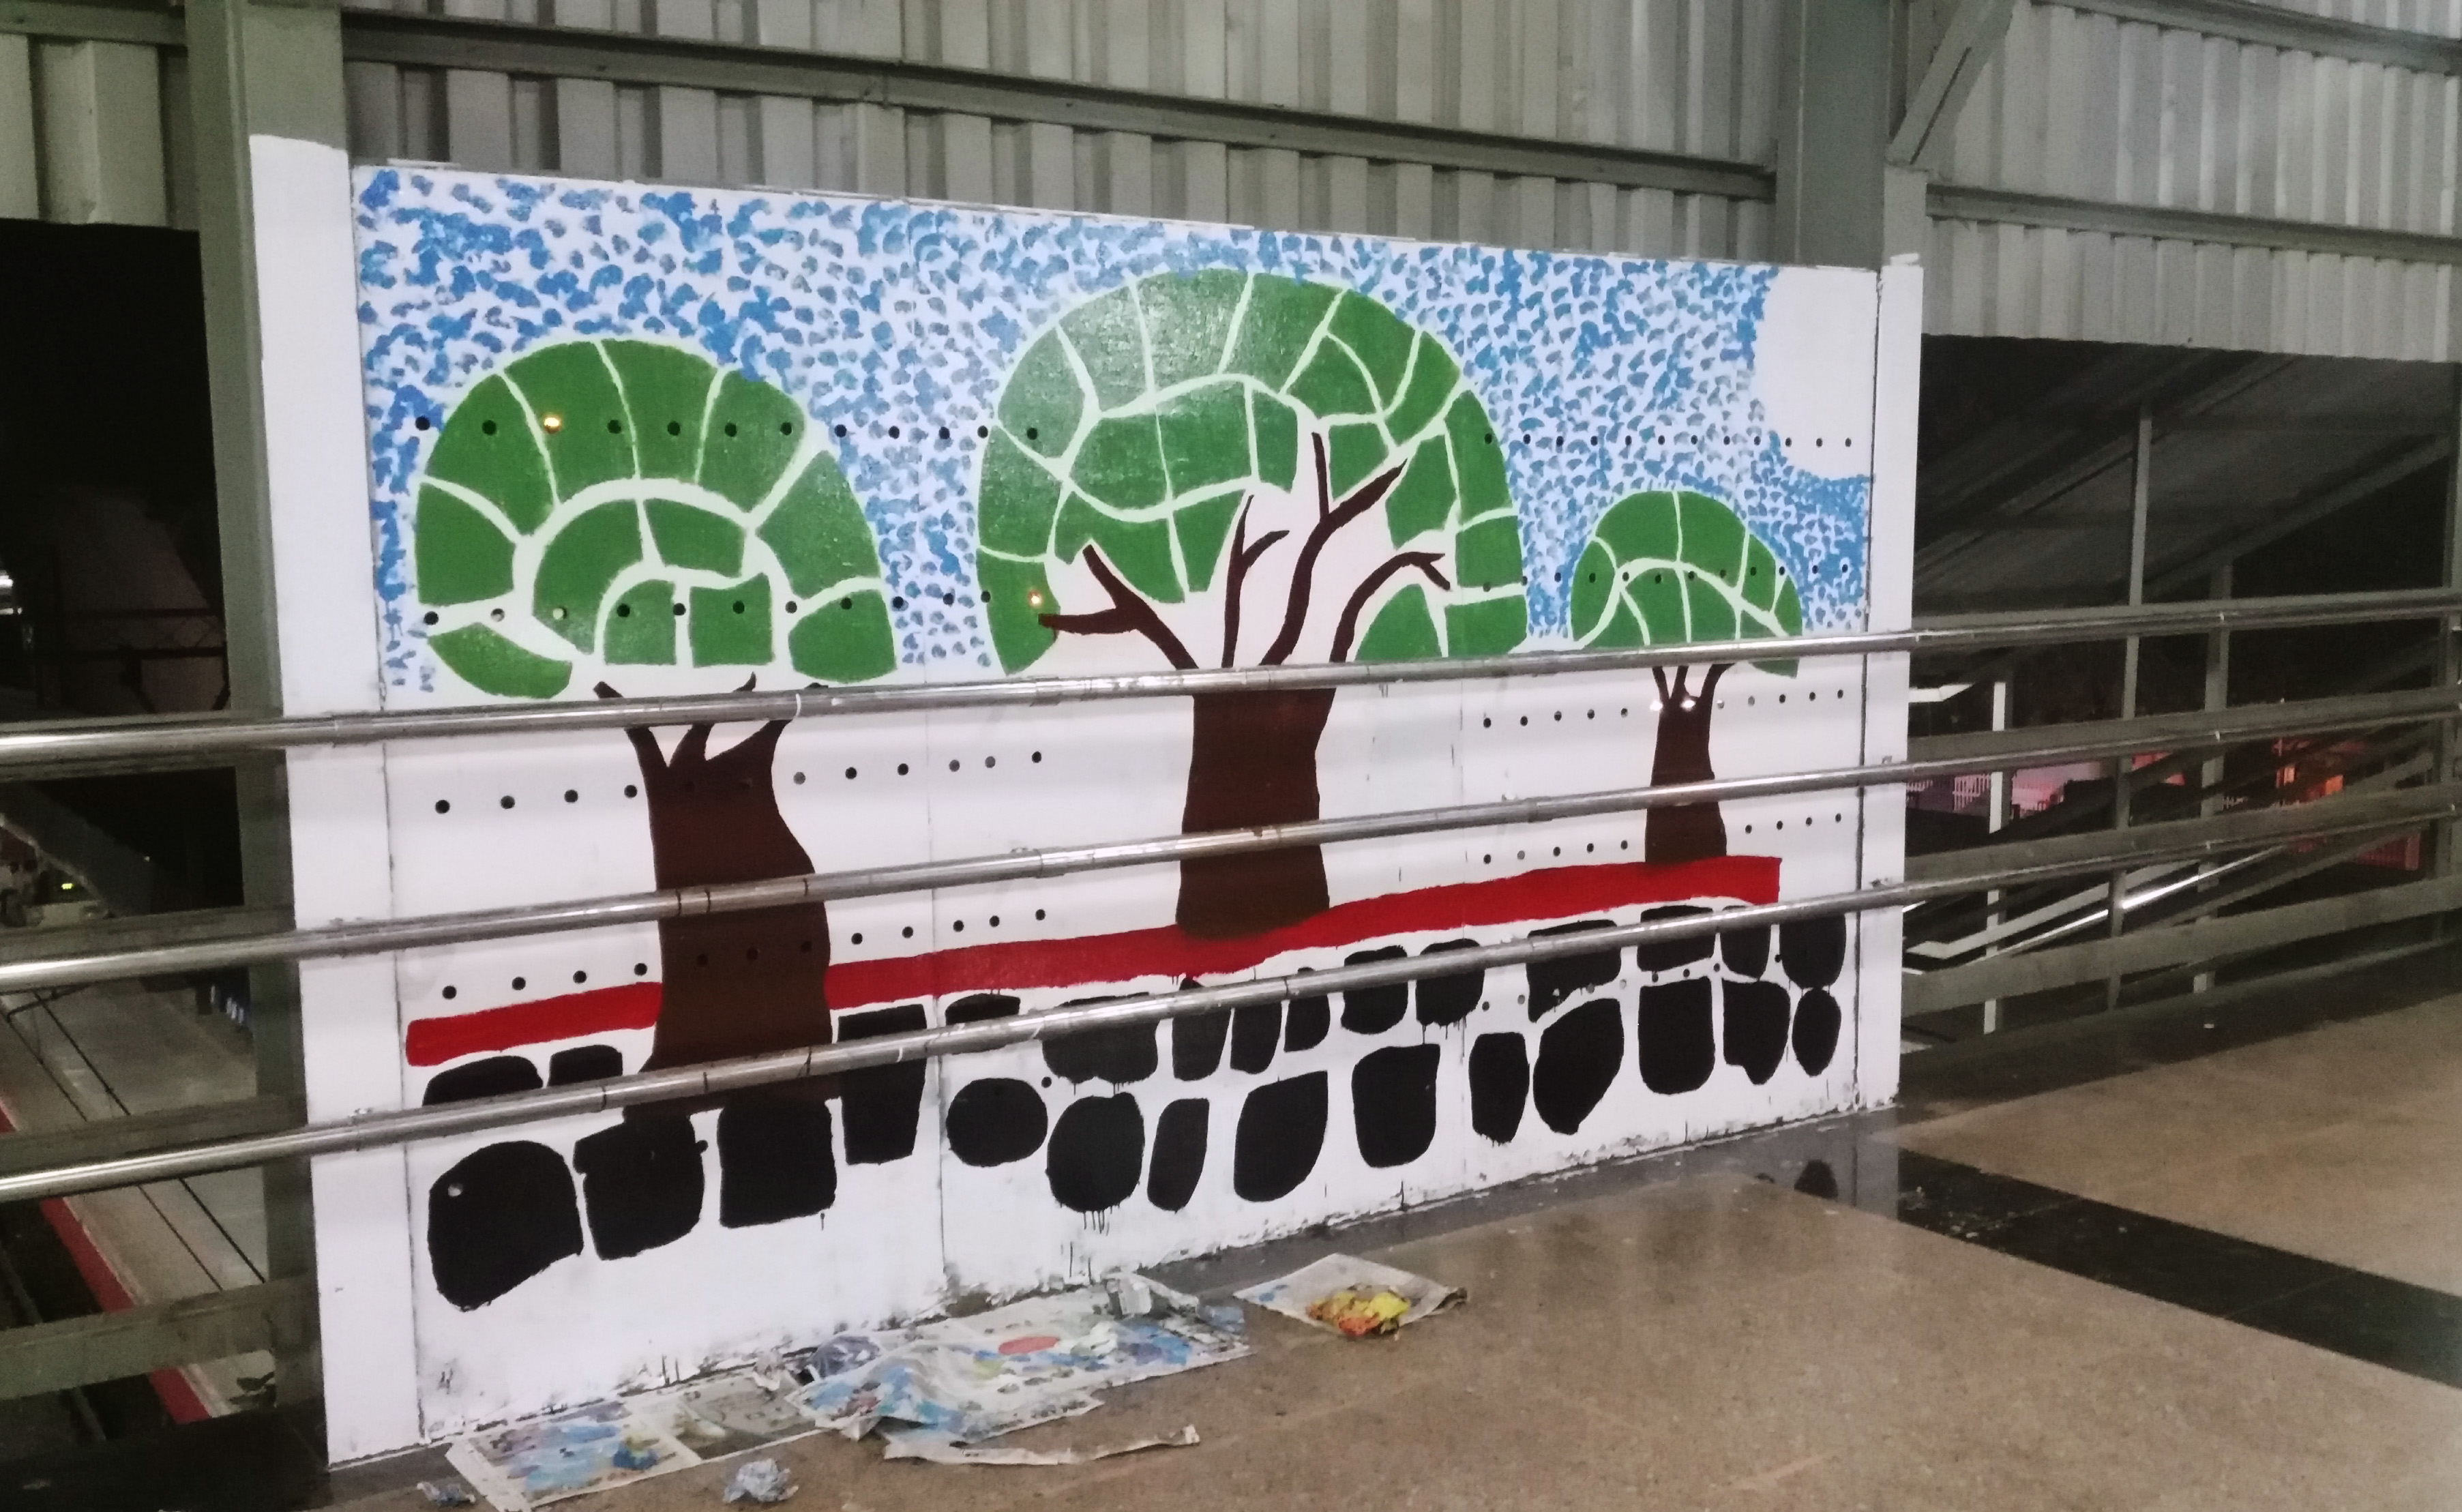 Make a Difference, an NGO based in Mumbai, is the driving force behind this project